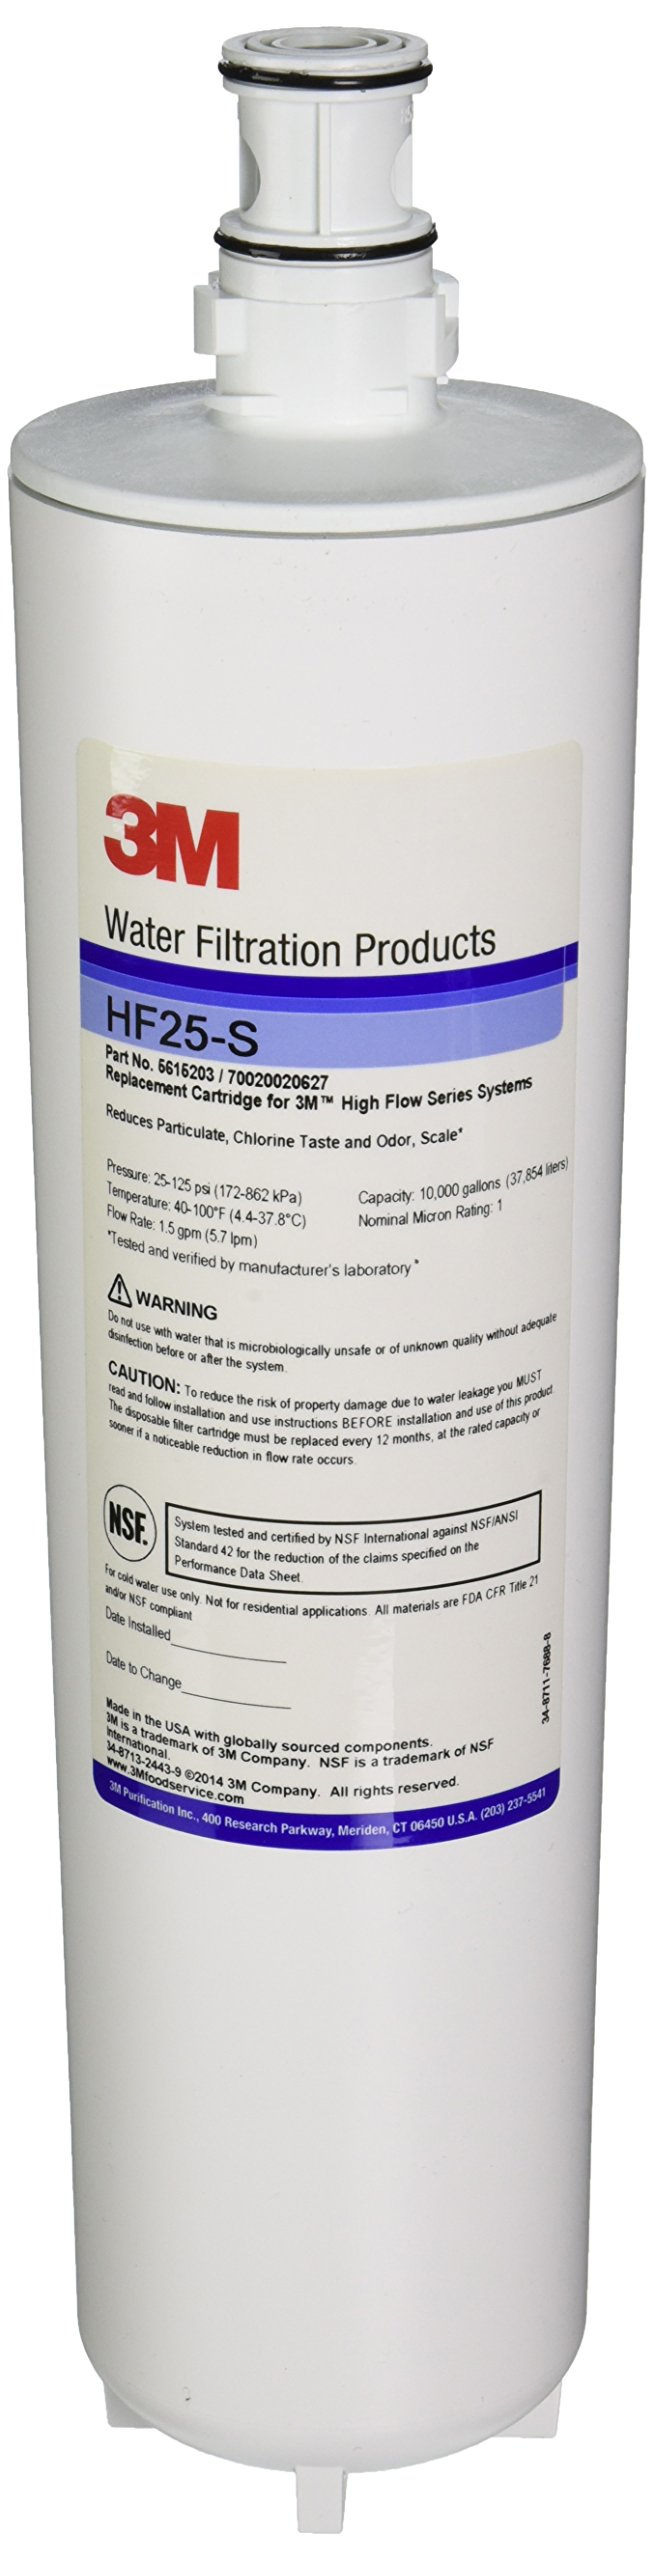 3M - HF25-S - Ice Machine Replacement Filter Cartridge Part # 5615203 by 3M